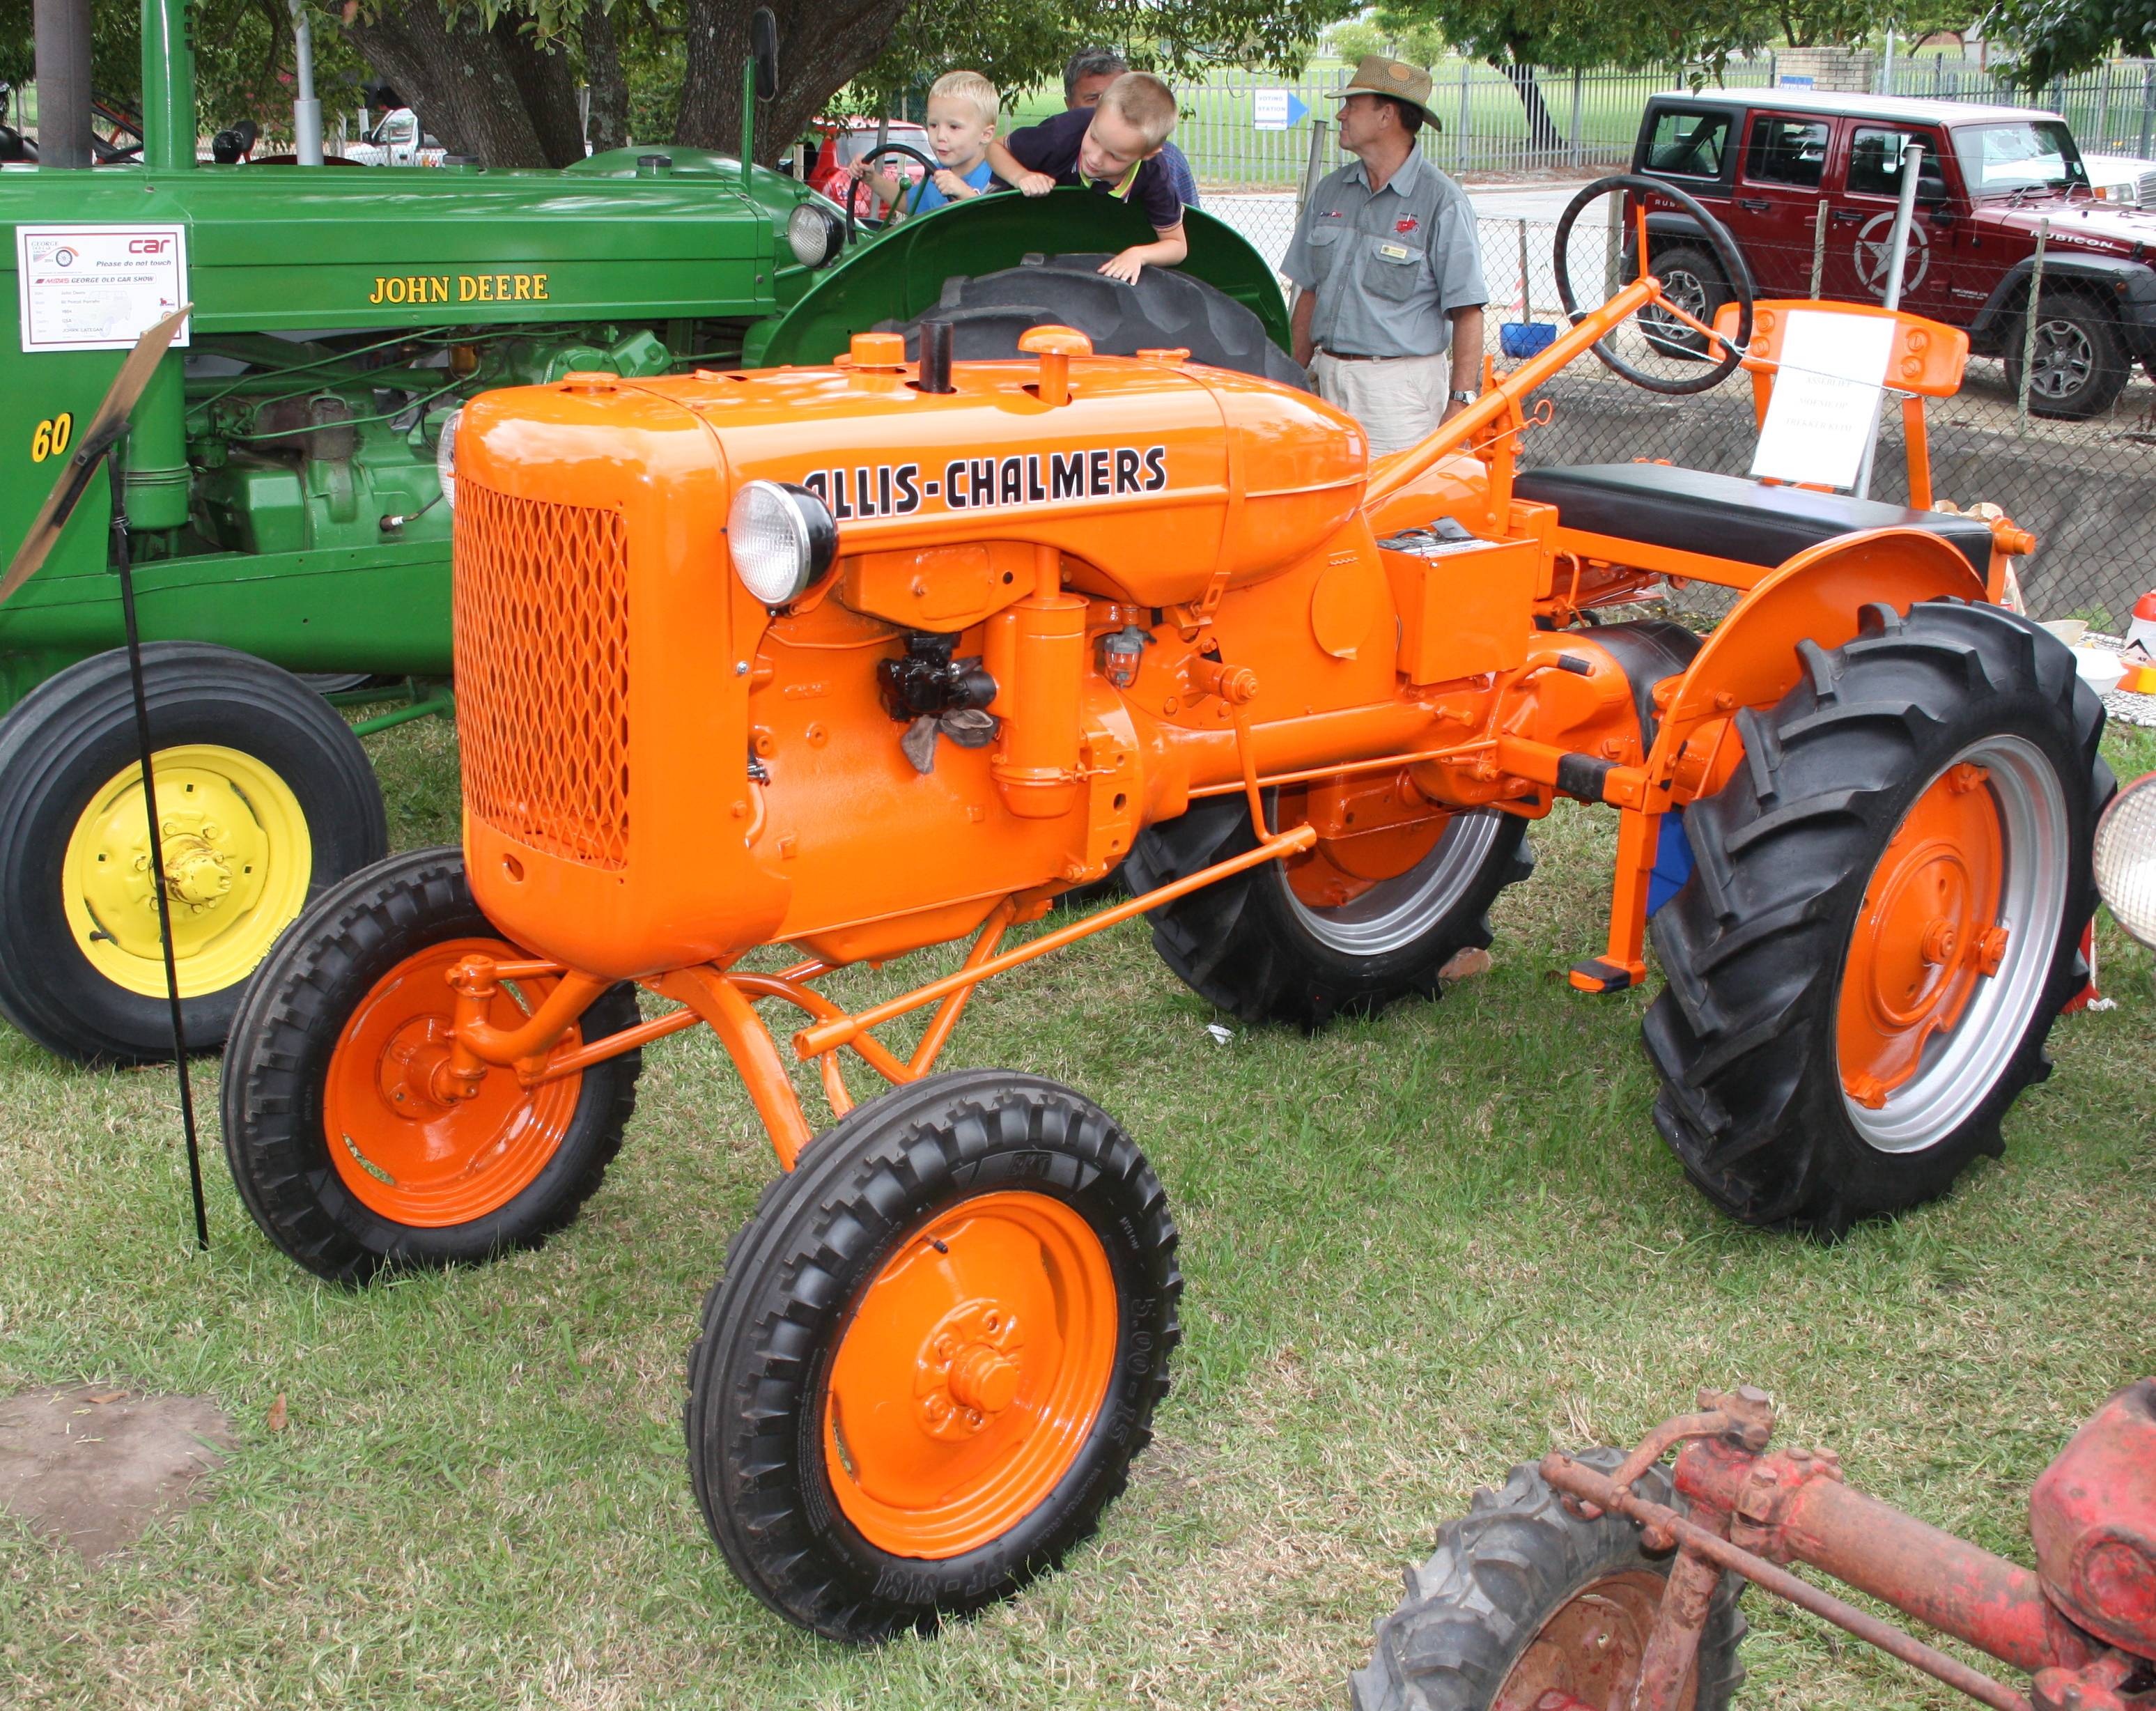 Allis Chalmers Tractor : Datei allis chalmers model b tractor